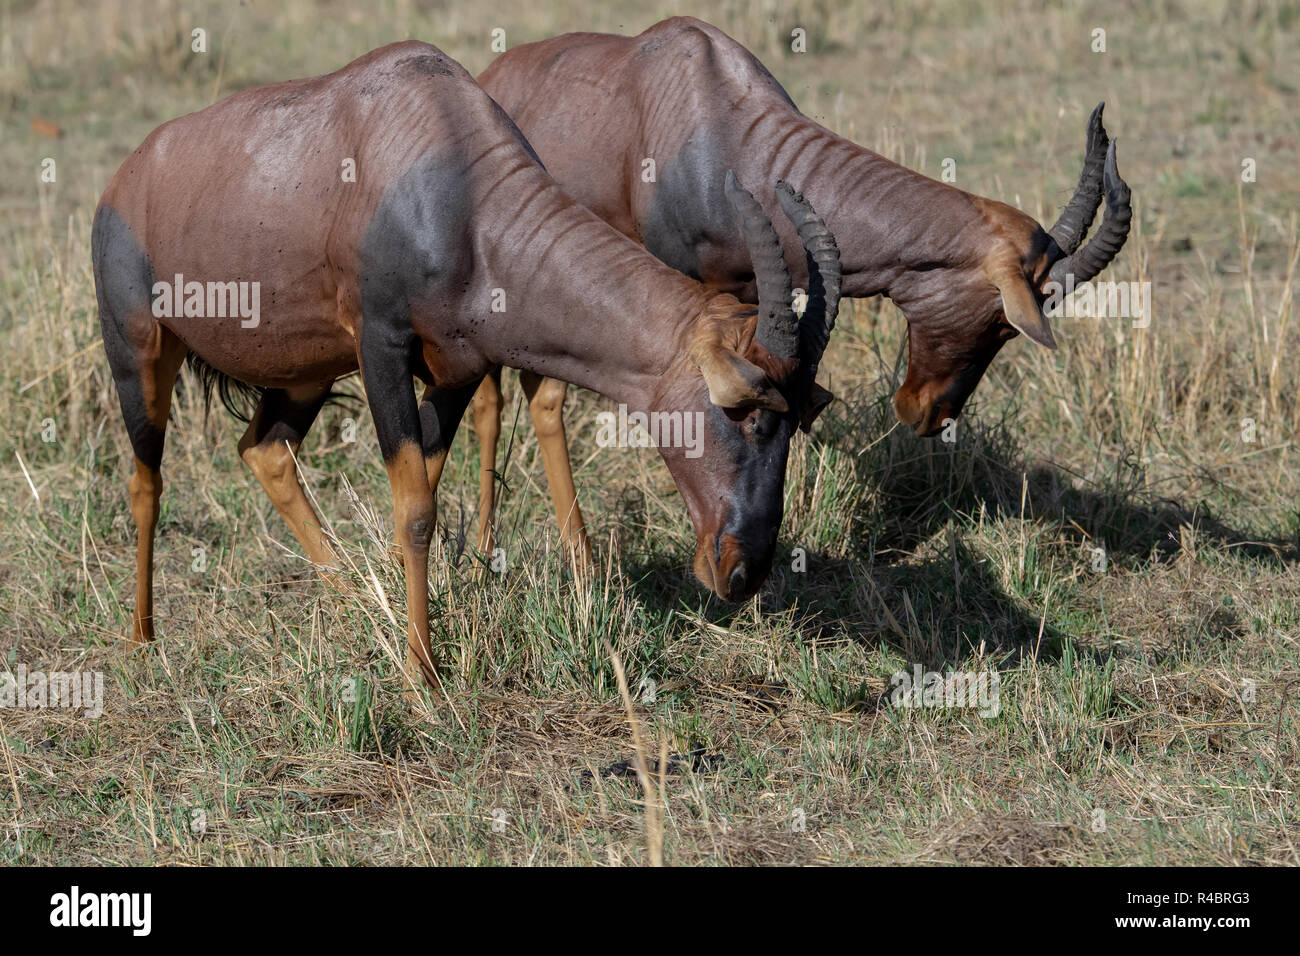 Topi (Damaliscus lunatus jimela) in Masai Mara National Reserve in Kenya. Conservation status is Vulnerable. - Stock Image